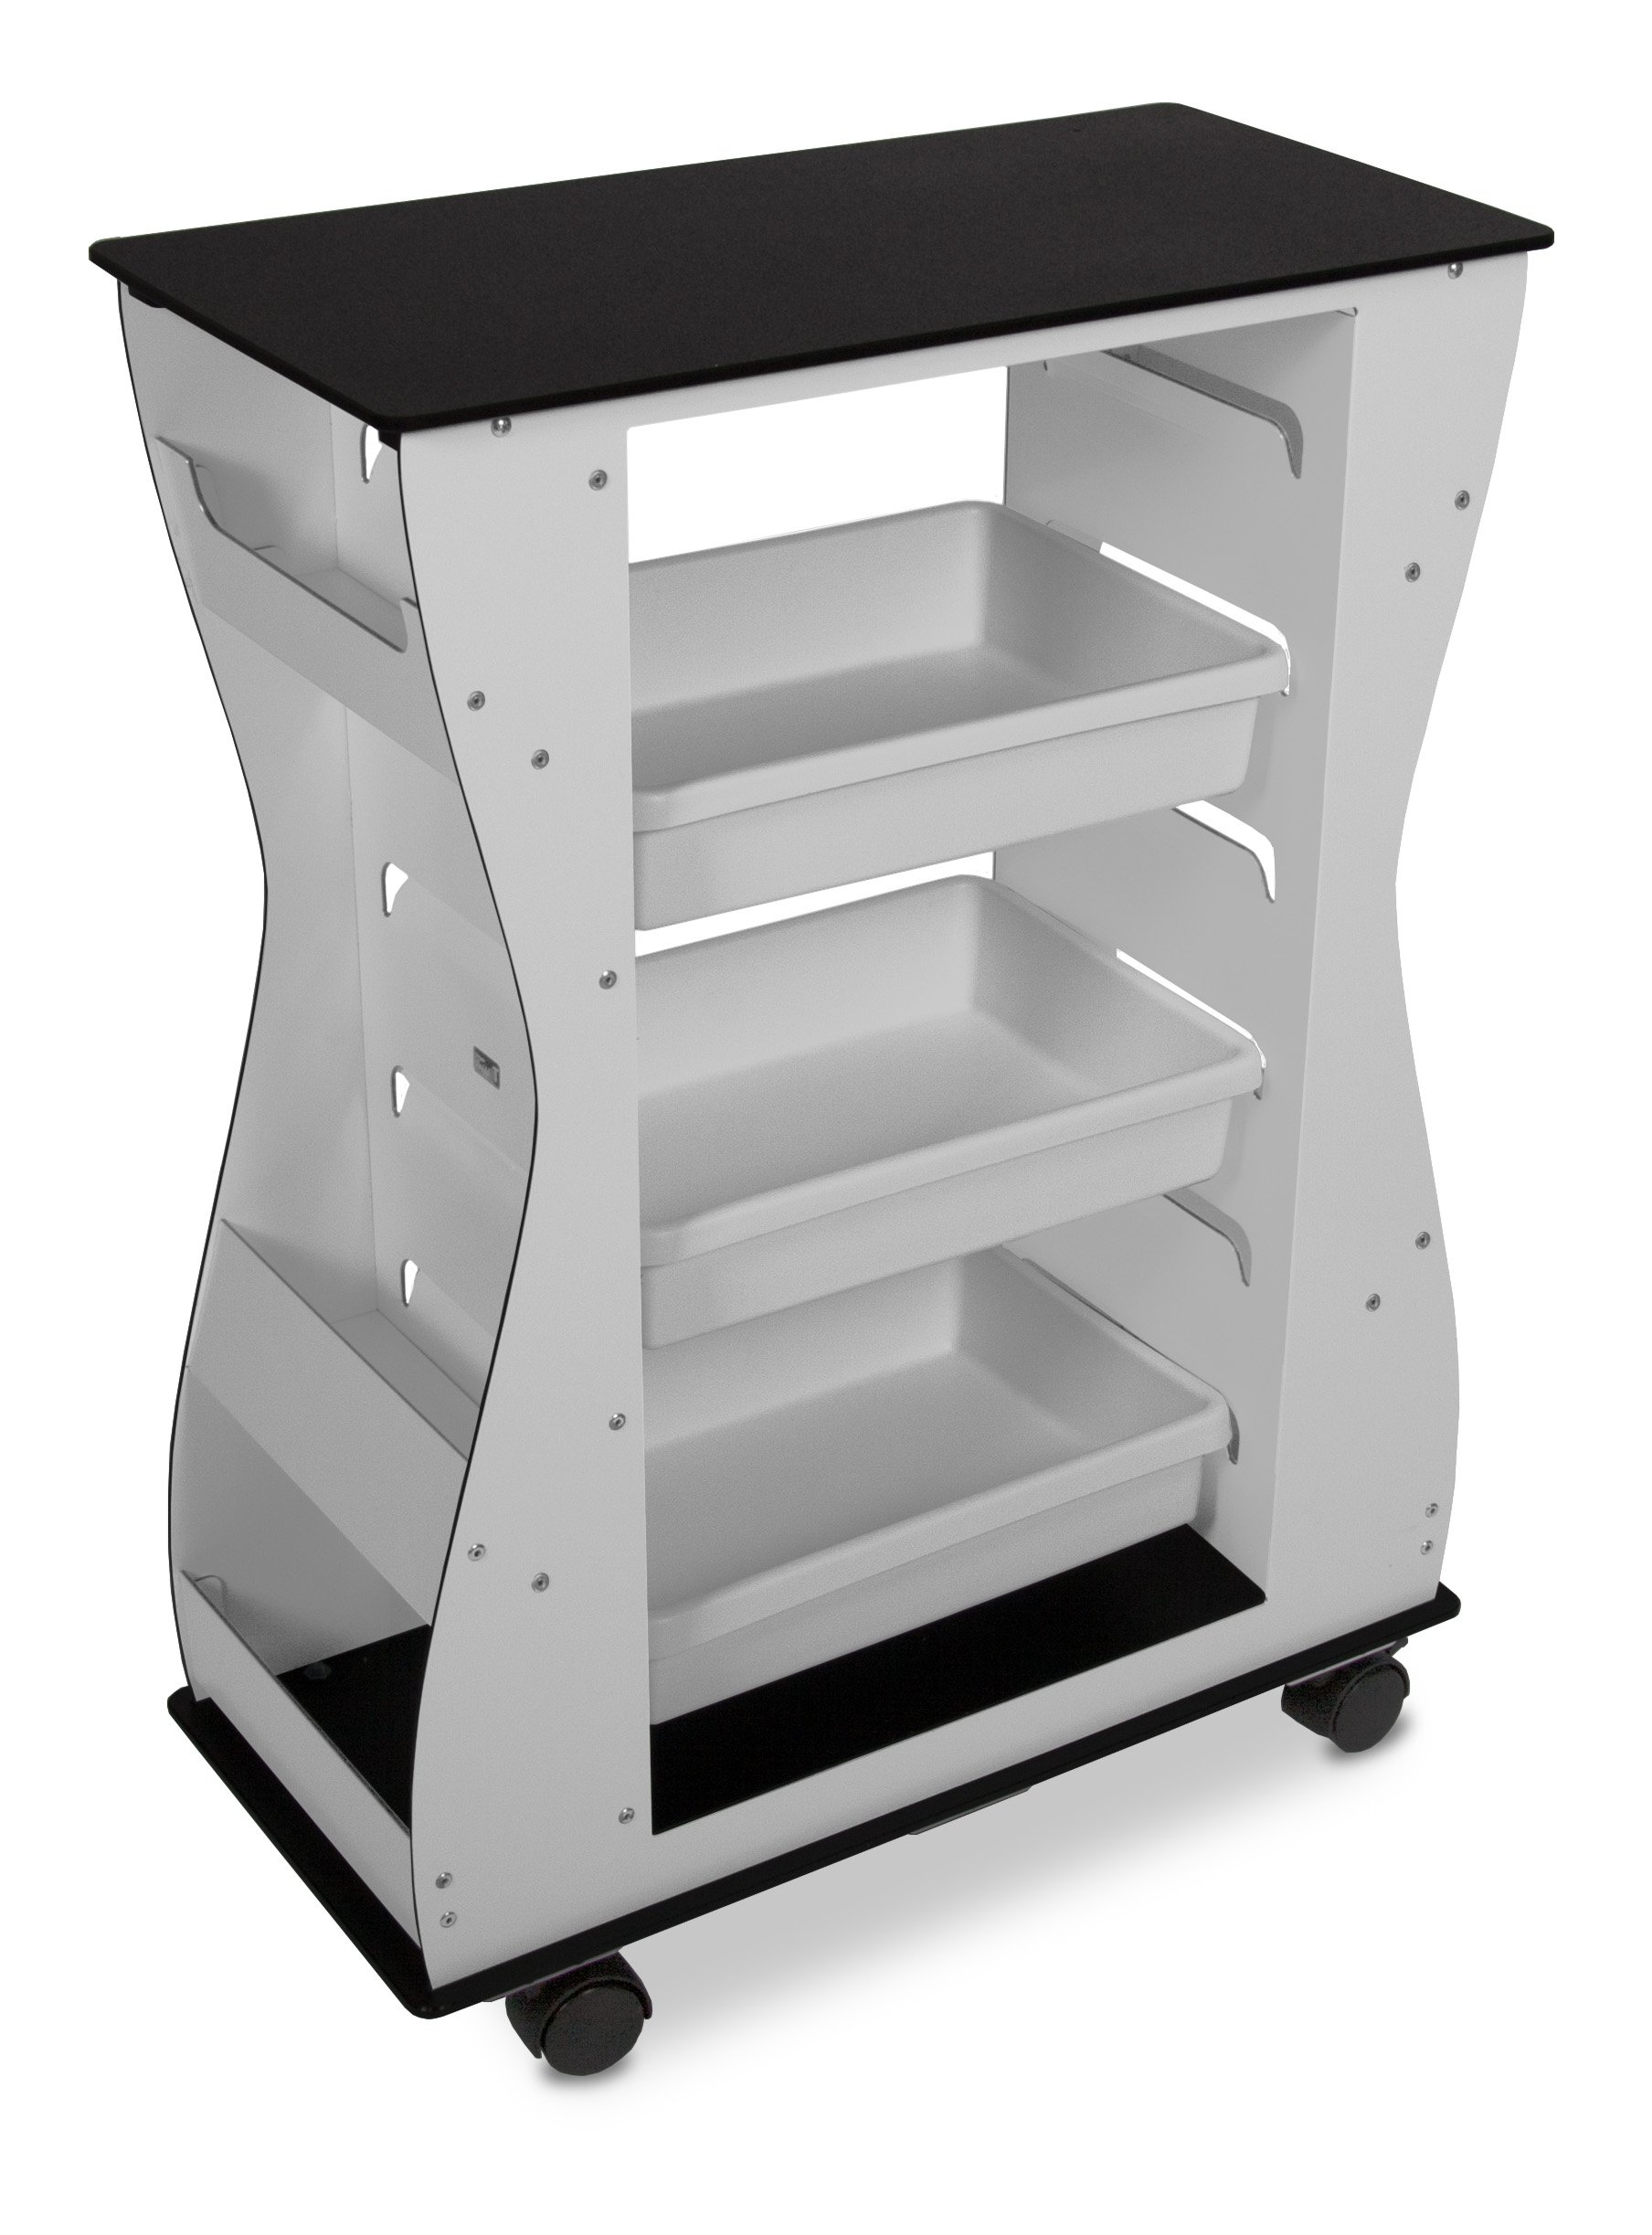 TrippNT 51472 Aluminum Polyethylene Composite Hourglass Light Duty Cart, 2-Sided, 24'' Width x 32'' Height x 11'' Depth, Black/White by TrippNT (Image #8)